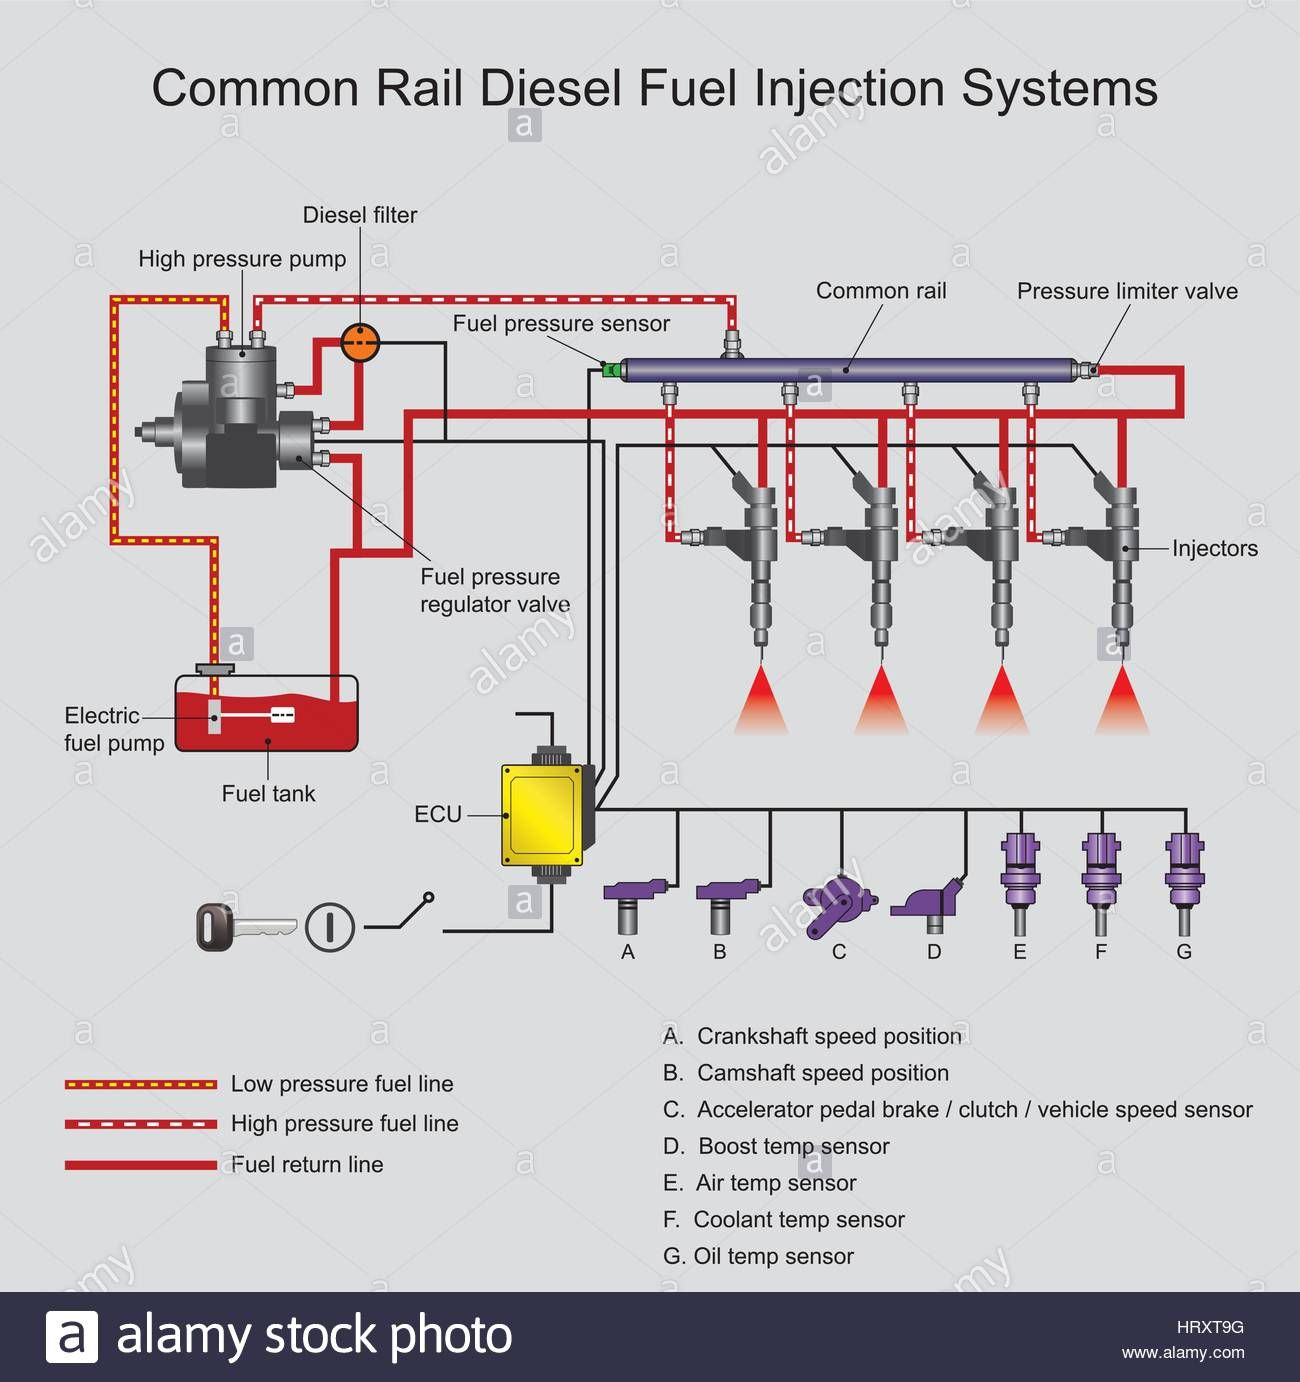 Download This Stock Vector Common Rail Direct Fuel Injection Is A